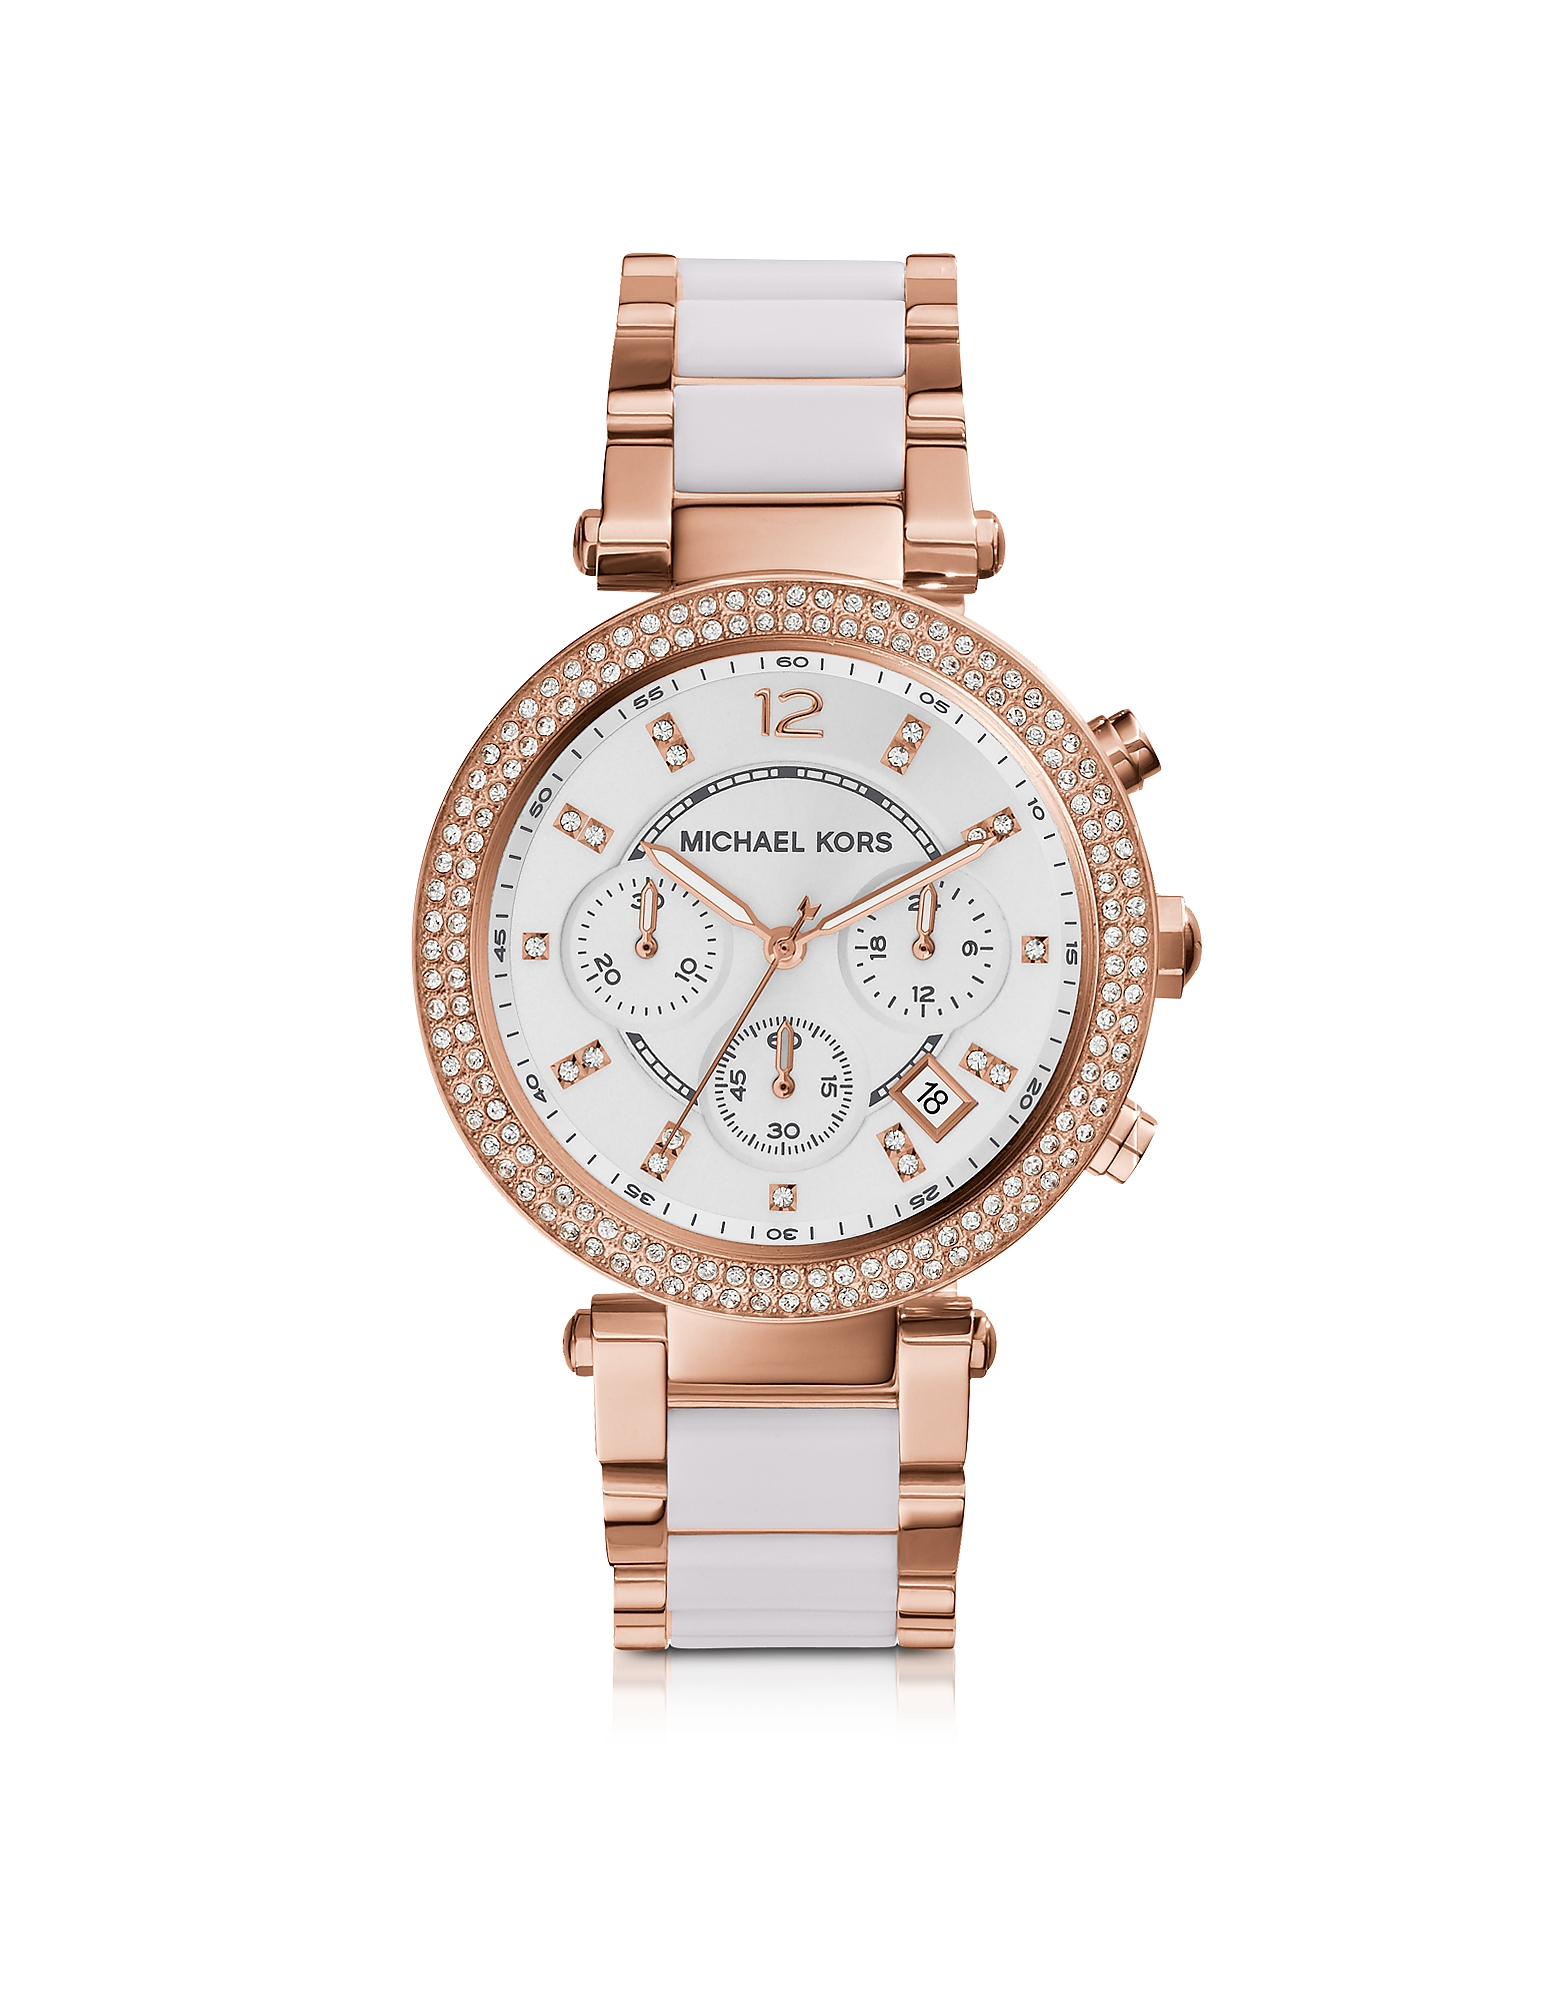 Michael Kors Women's Watches, Parker Stainless Steel and White Acetate Women's Watch